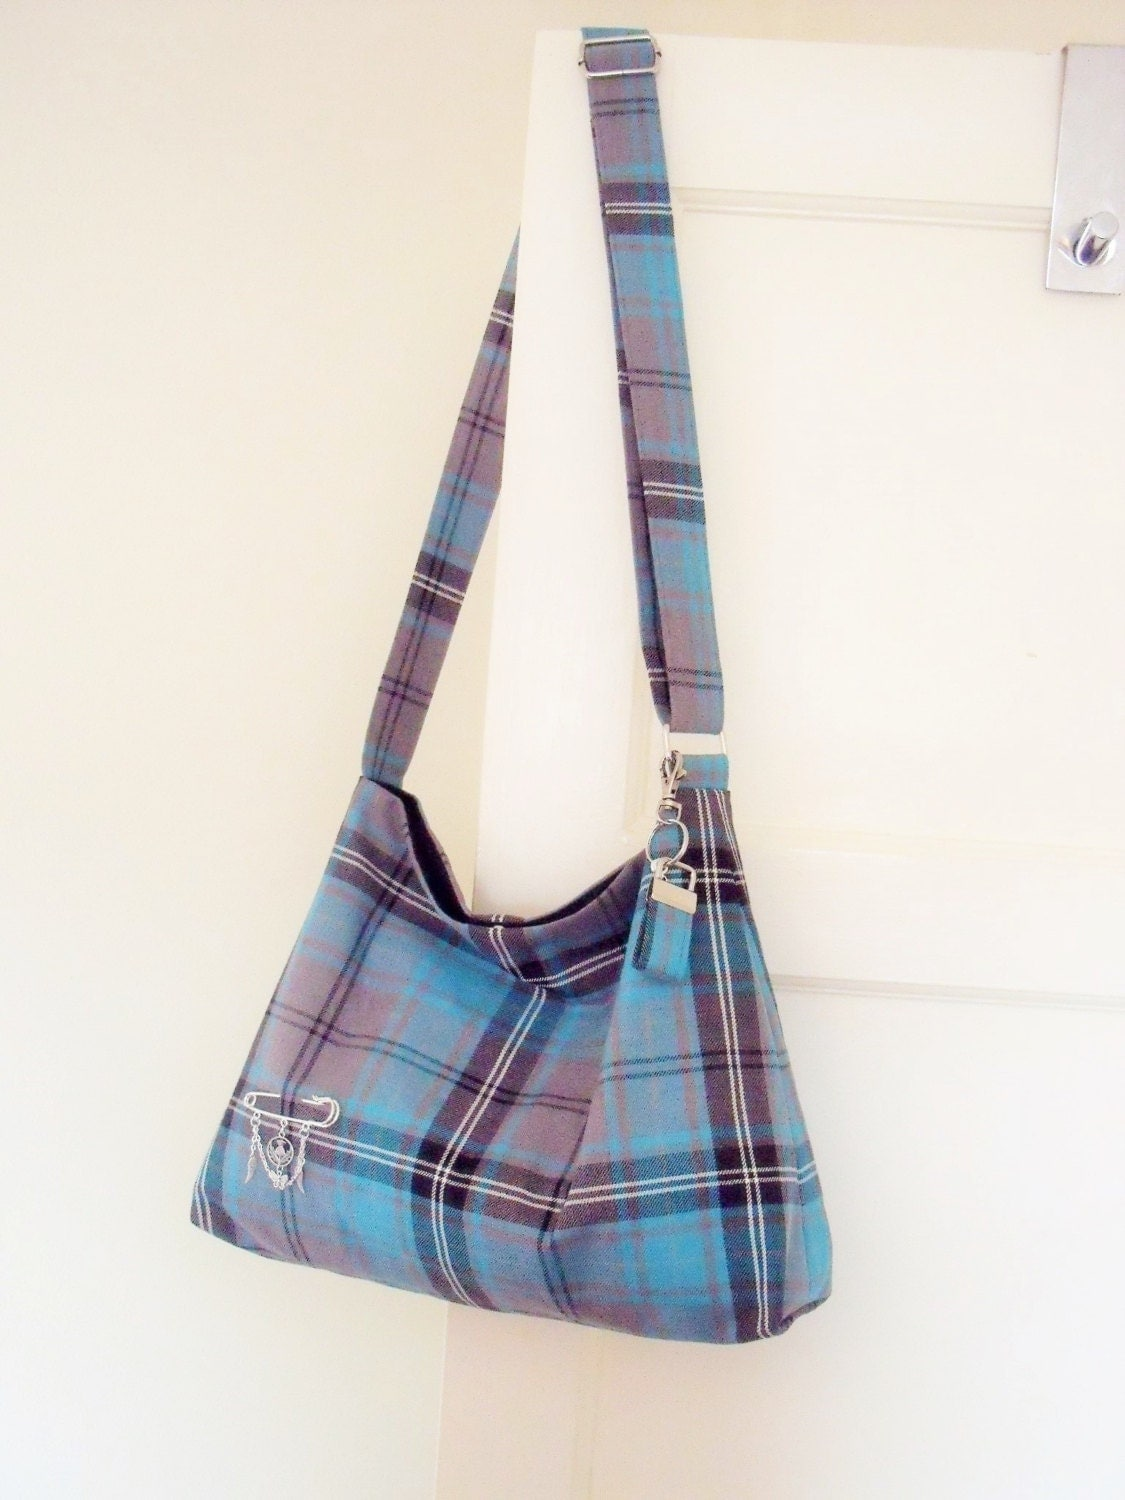 Tartan Messenger  Slouchy Bag Cross body Shoulder Bag  Turquoise  Grey Plaid Purse  Handbag  Purse handmade in Scotland gift for her